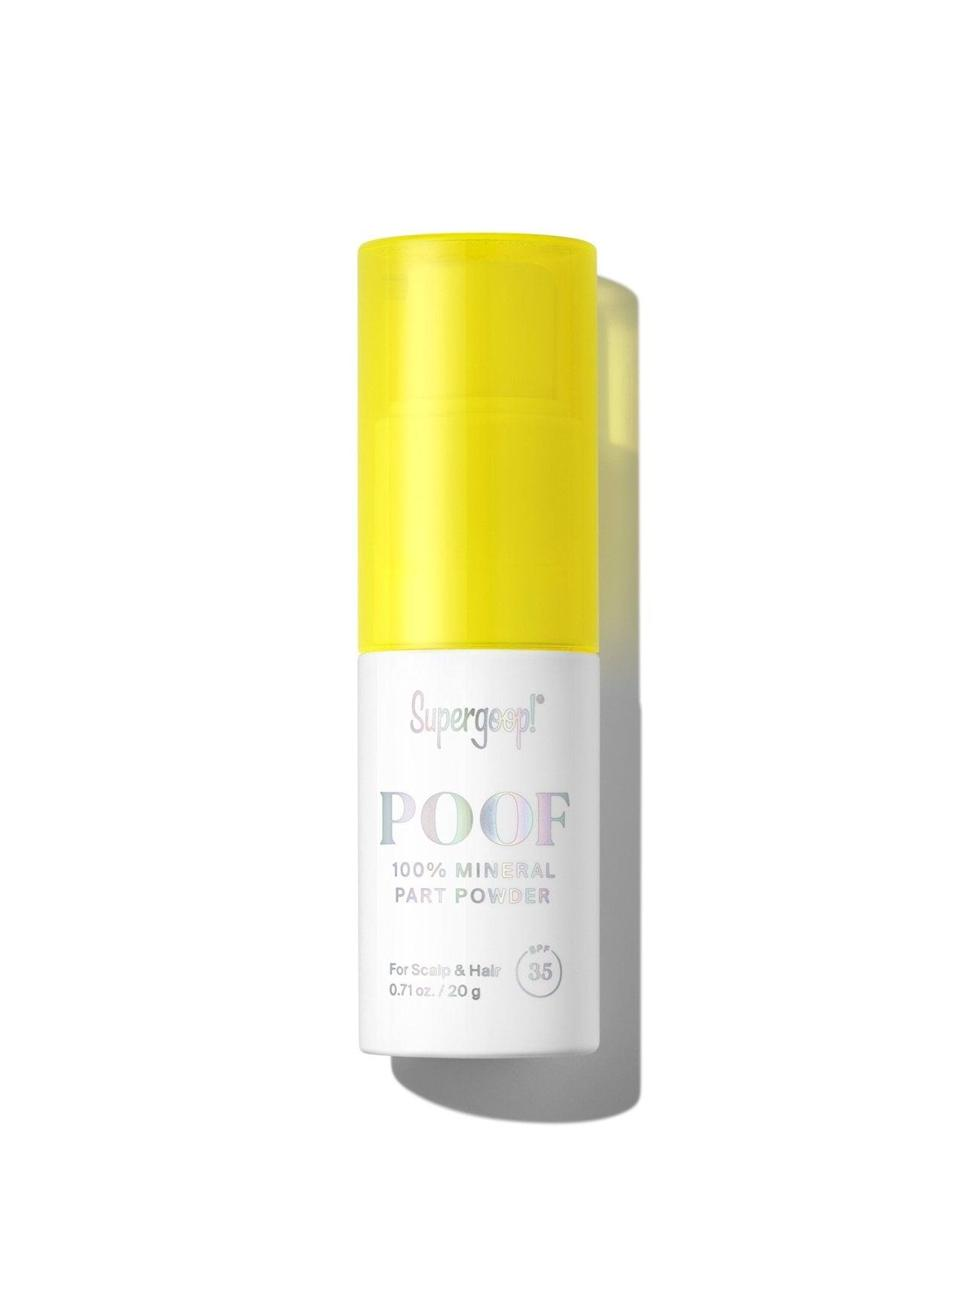 """<p>Both doctors swear by the <span>Supergoop! Poof Part Powder SPF 35 Powder for Scalp and Hair</span> ($34) because of its lightweight formula and staying power. </p> <p>""""It feels similar to a dry shampoo and has broad-spectrum SPF and UV protection for the scalp,"""" Dr. Peredo said. """"It is also cruelty-free, clean, and safe for coral reefs. It is formulated with zinc oxide, which is an ingredient I always look for in a sunscreen."""" </p> <p>According to Dr. Halim, this one also doubles as a hair texturizer.</p>"""